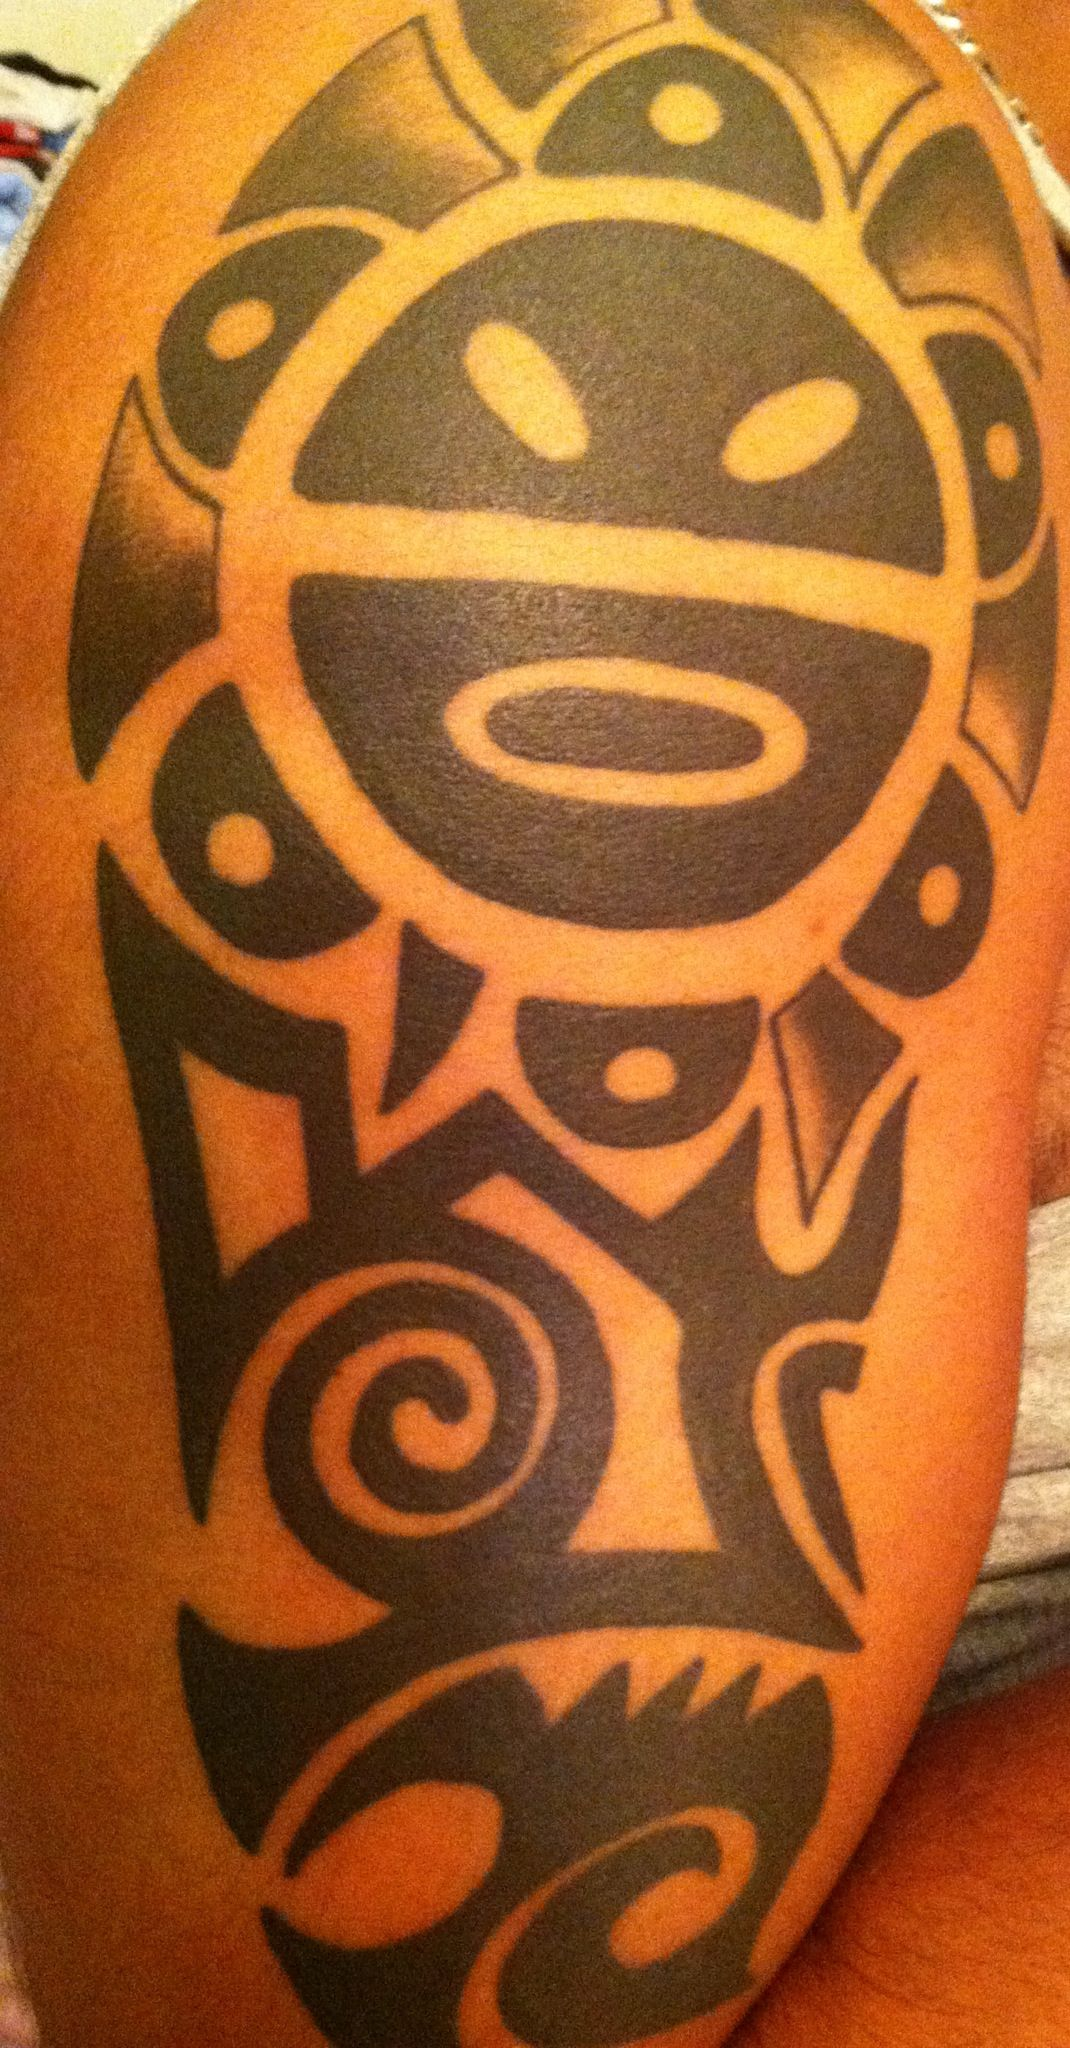 Taino indian tattoos the timeless style of native american art sol taino tattoo sol taino tattoo puertorico buycottarizona Image collections